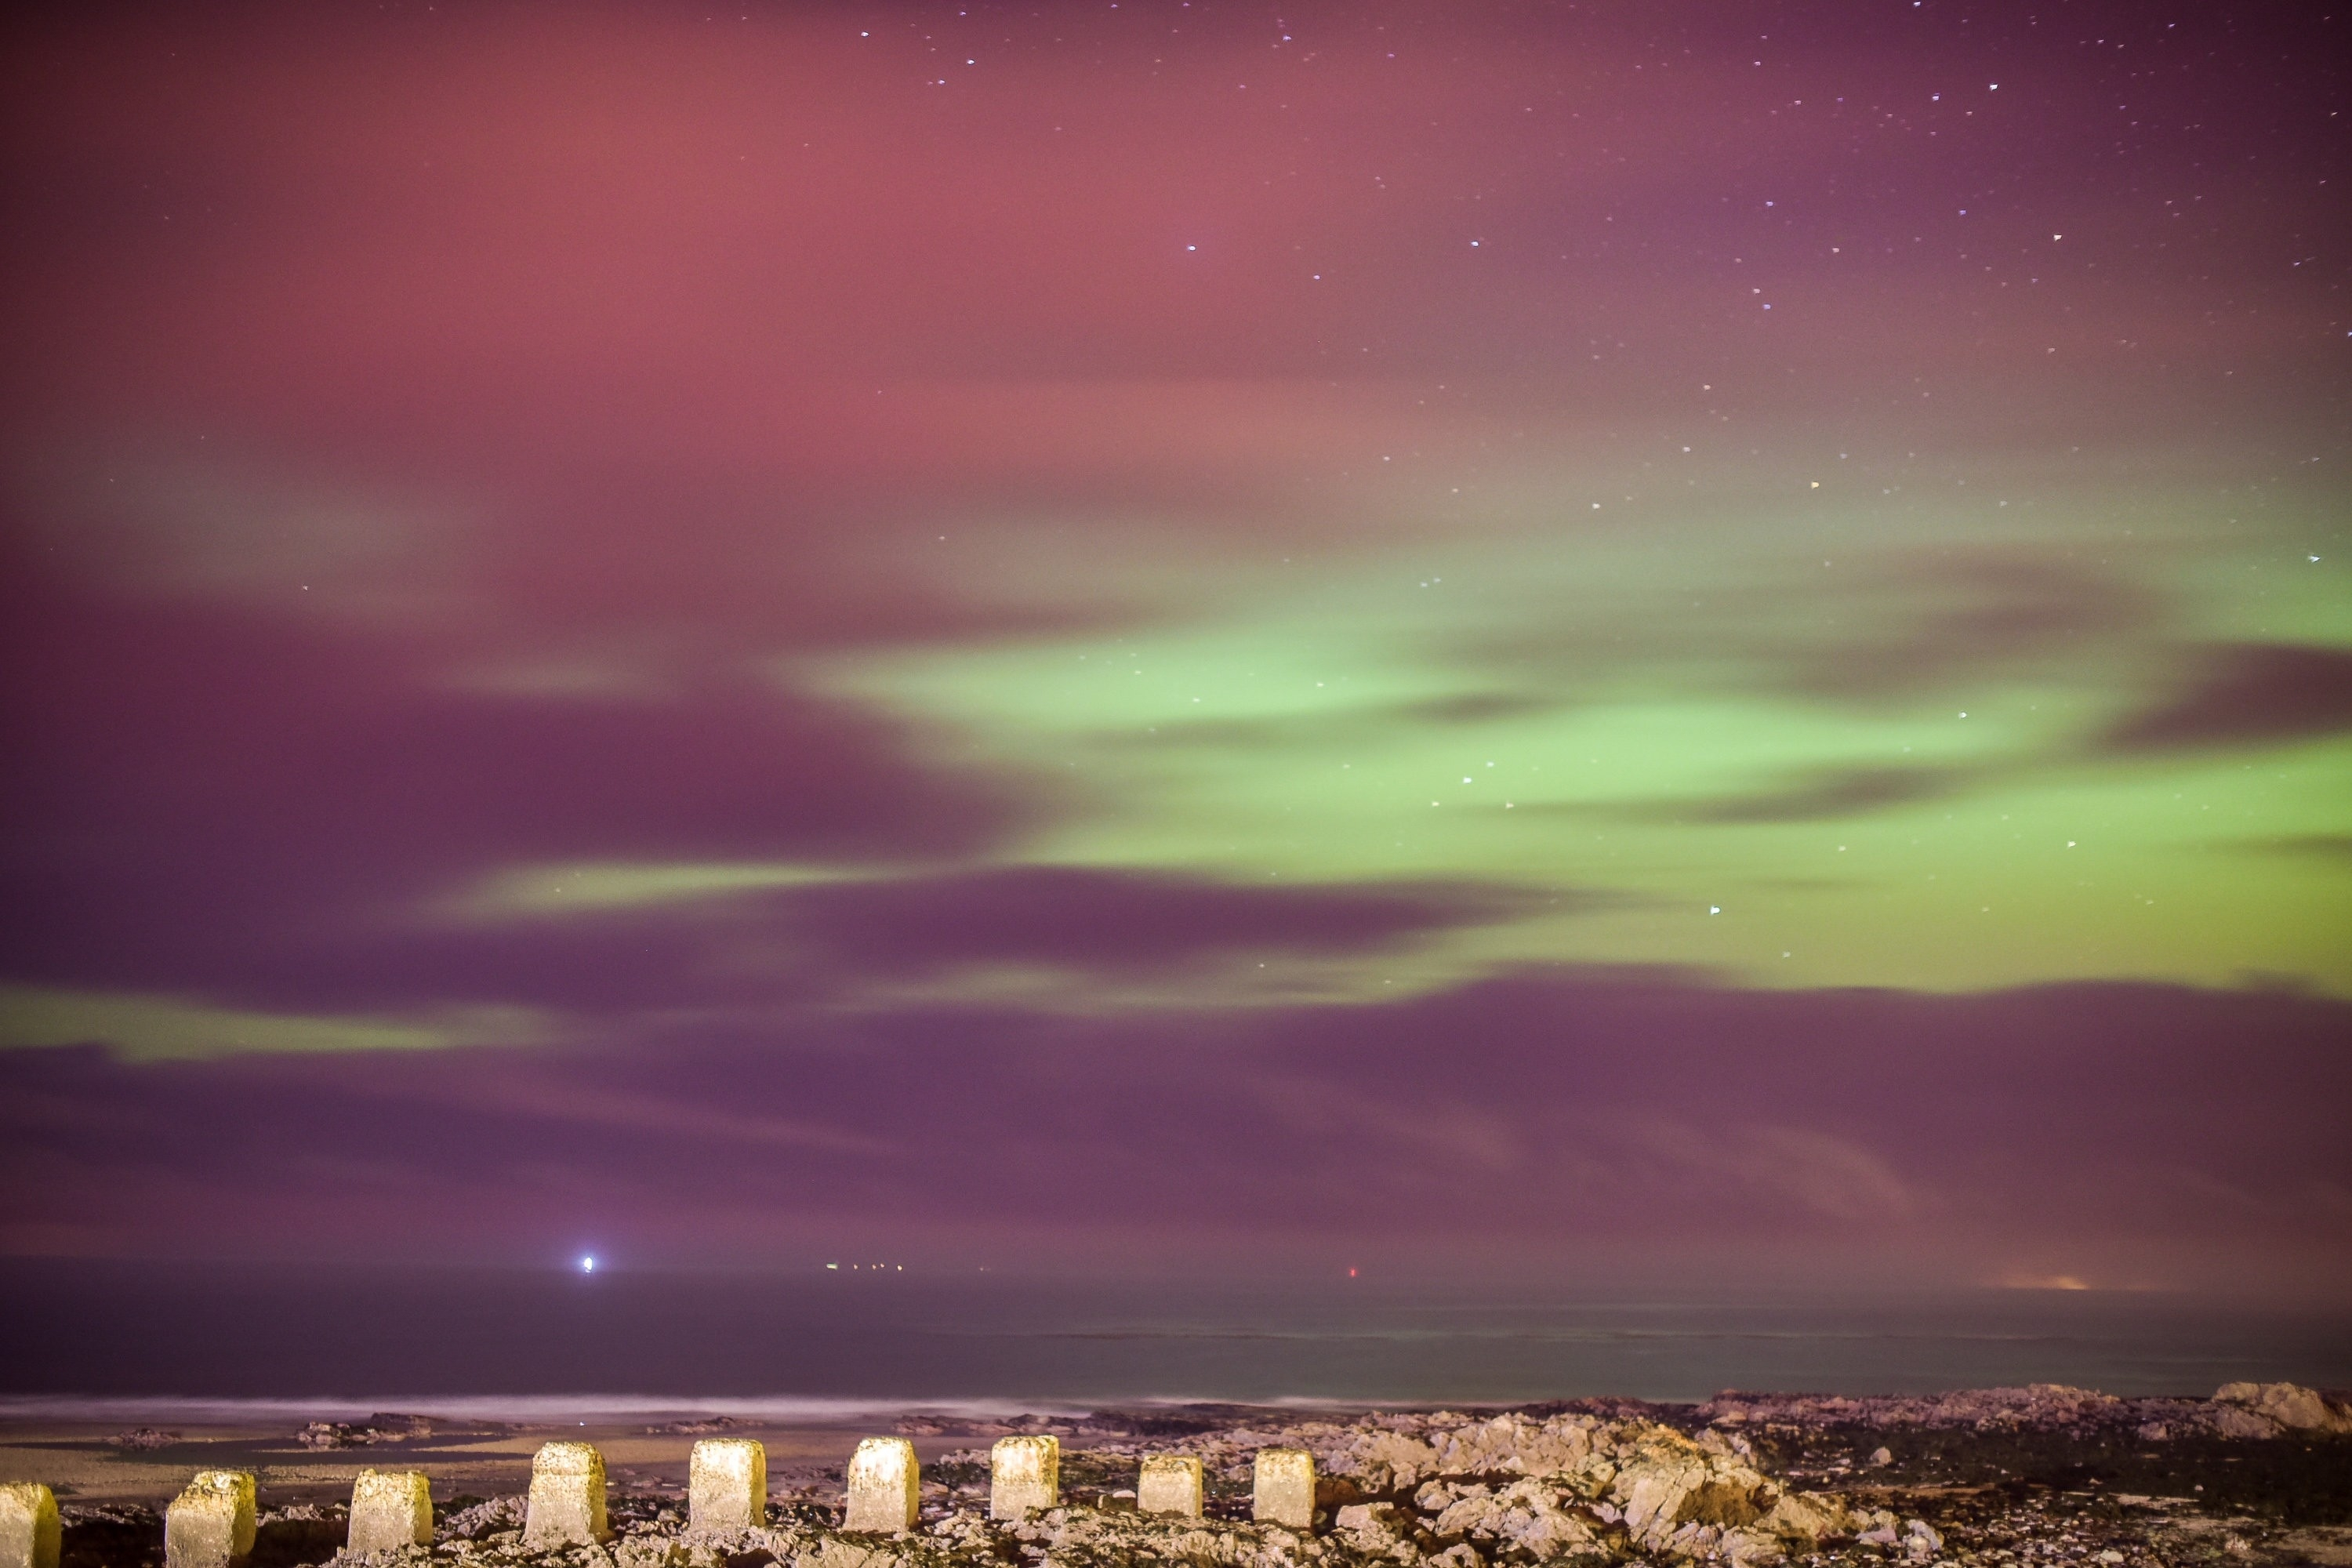 The Northern Lights, Aurora Borealis, are seen over the West Beach in Lossiemouth, Moray on December 14 2015.